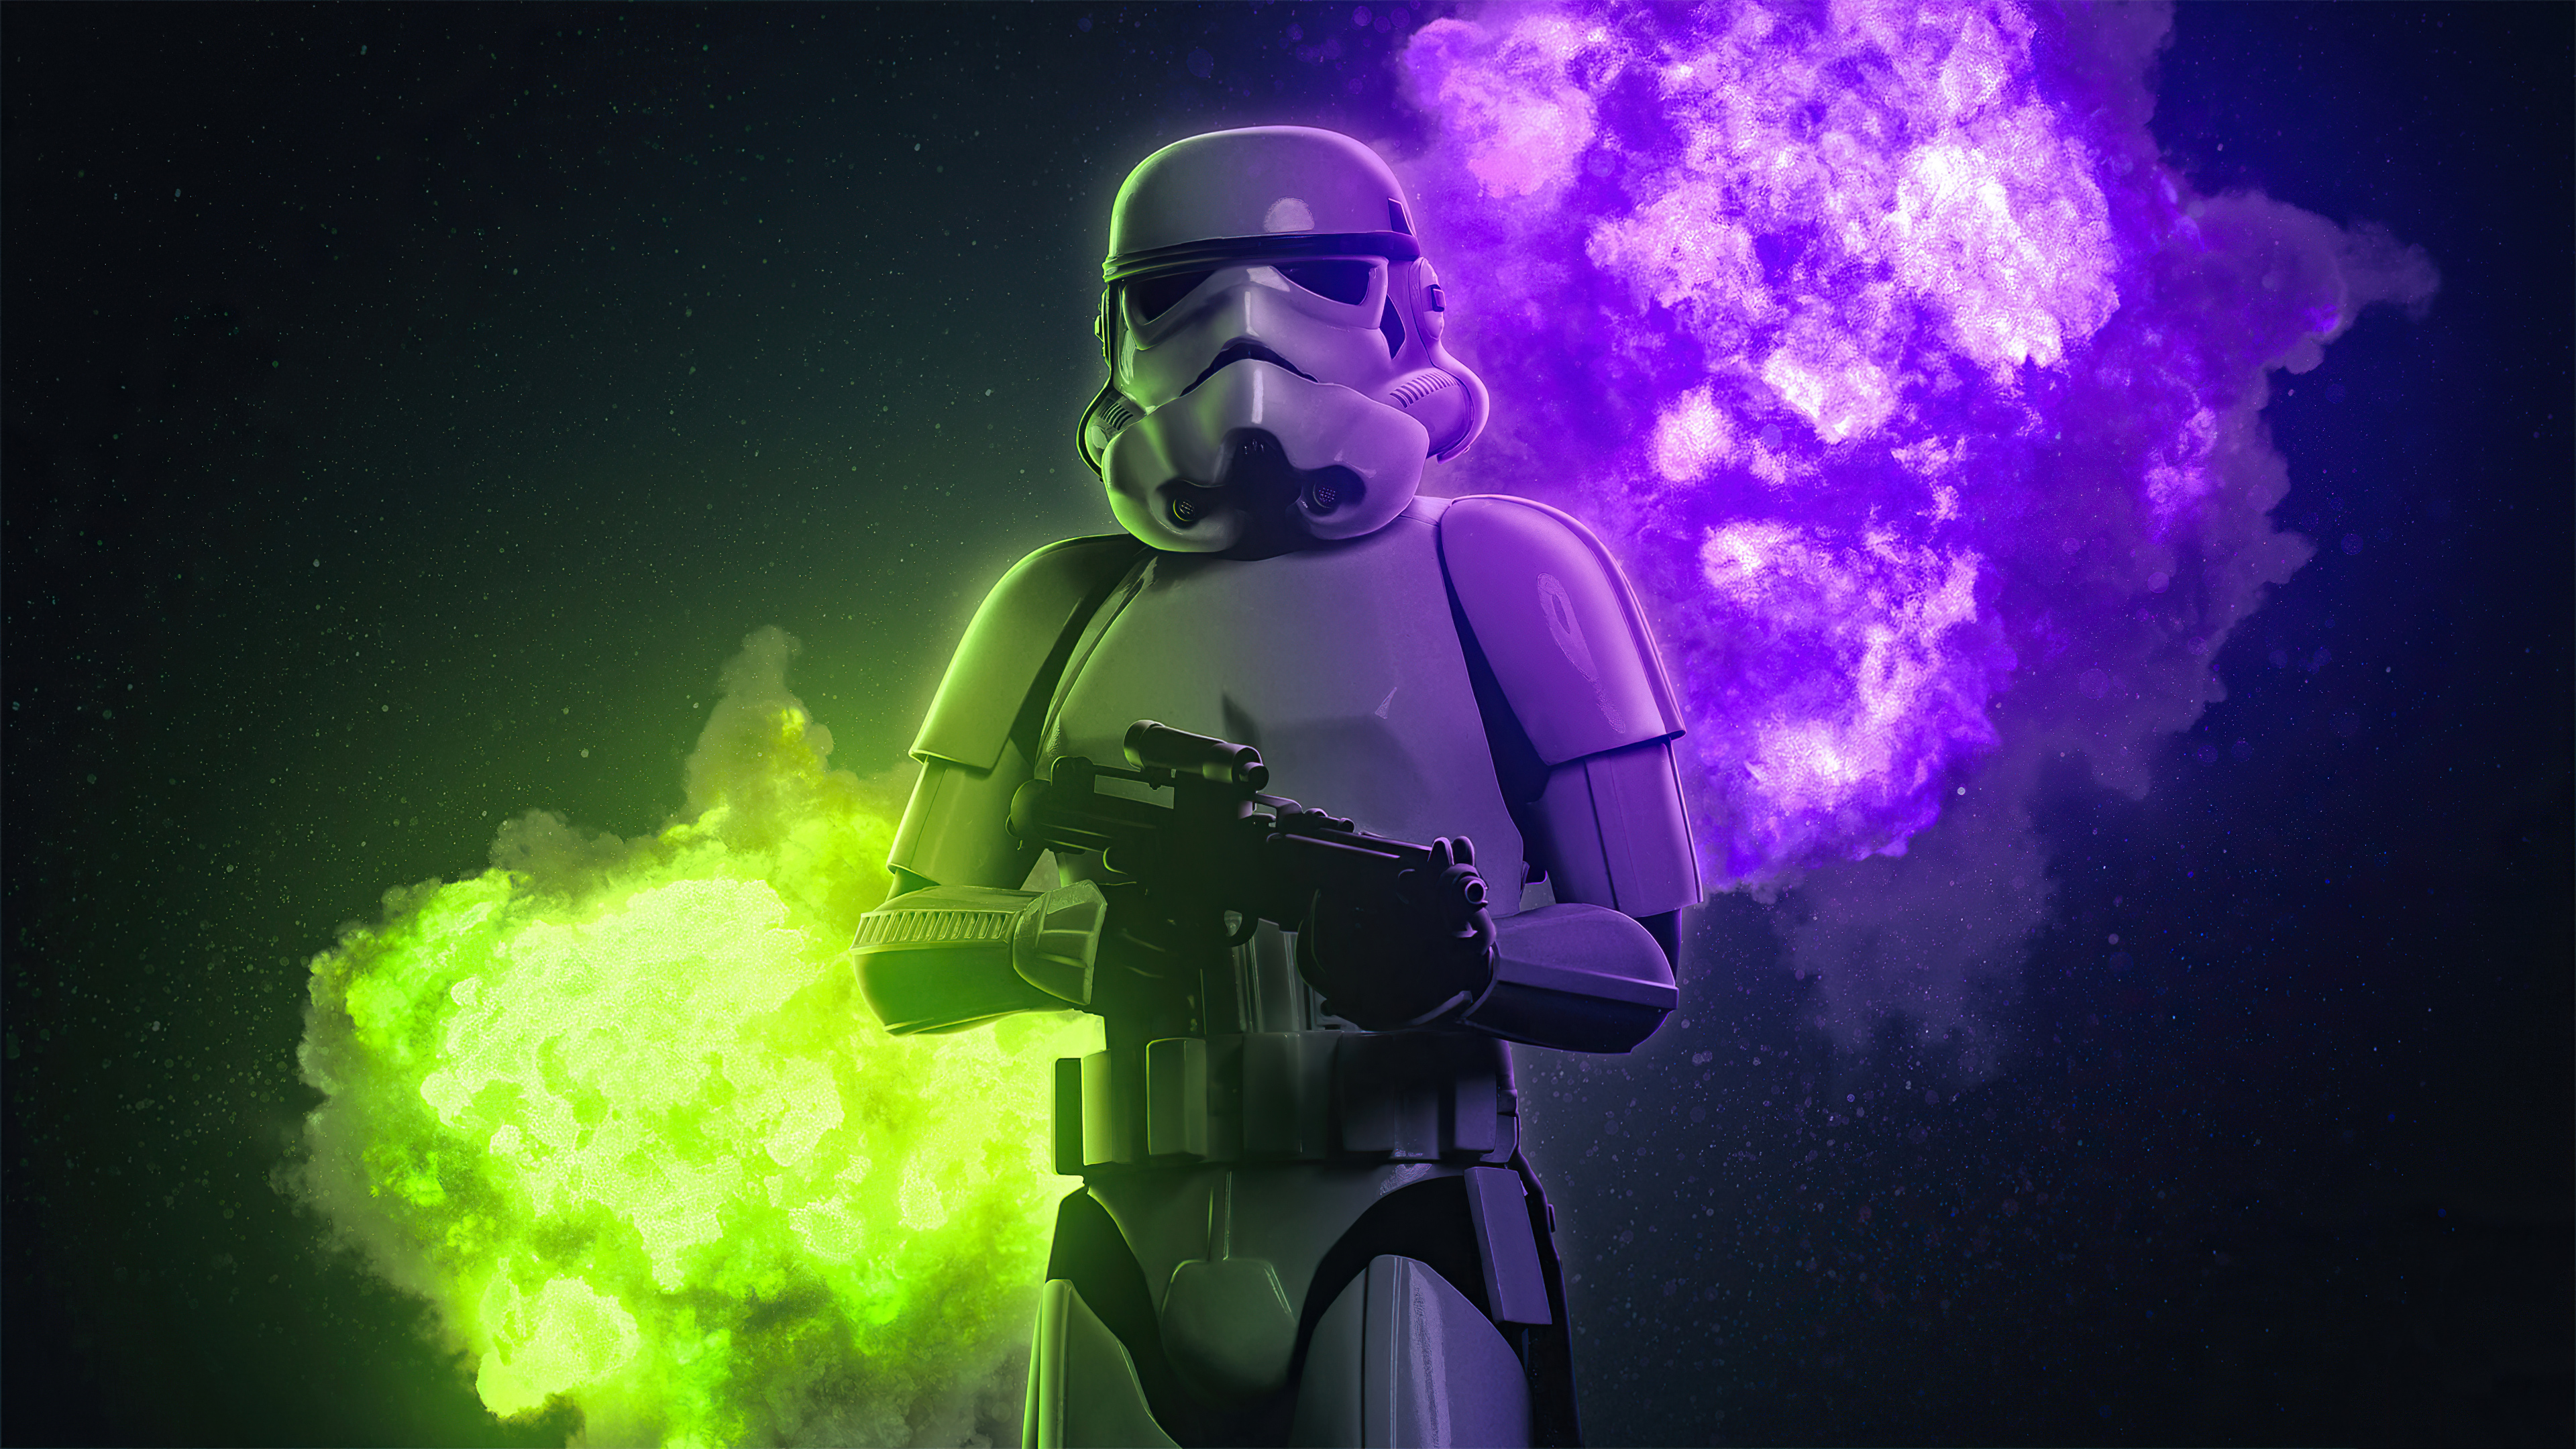 Imperial Stormtrooper 4k Hd Superheroes 4k Wallpapers Images Backgrounds Photos And Pictures